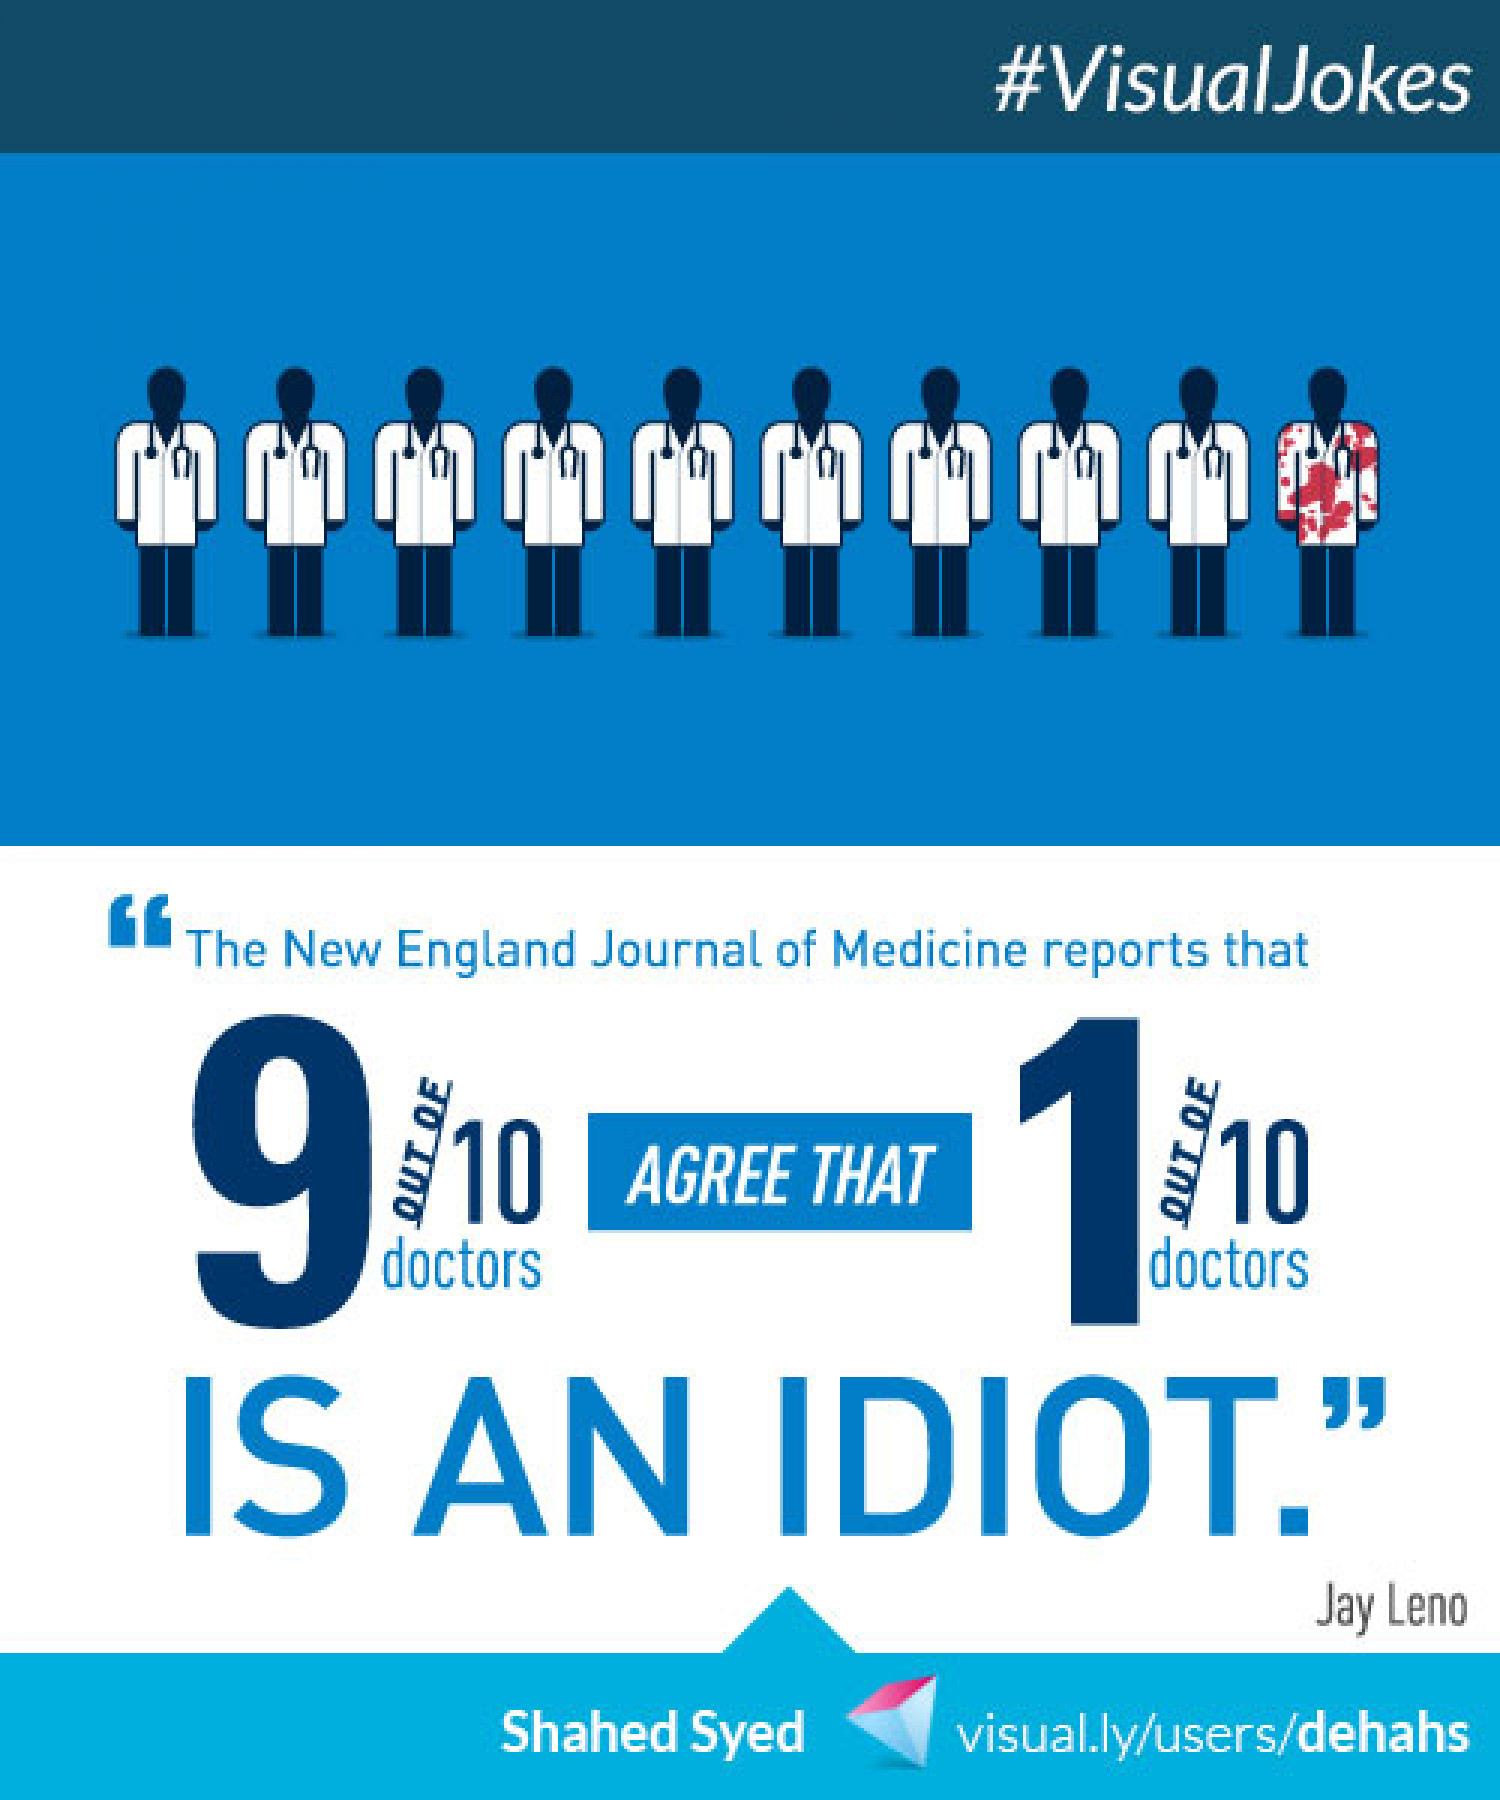 9 Out of 10 Doctors Infographic